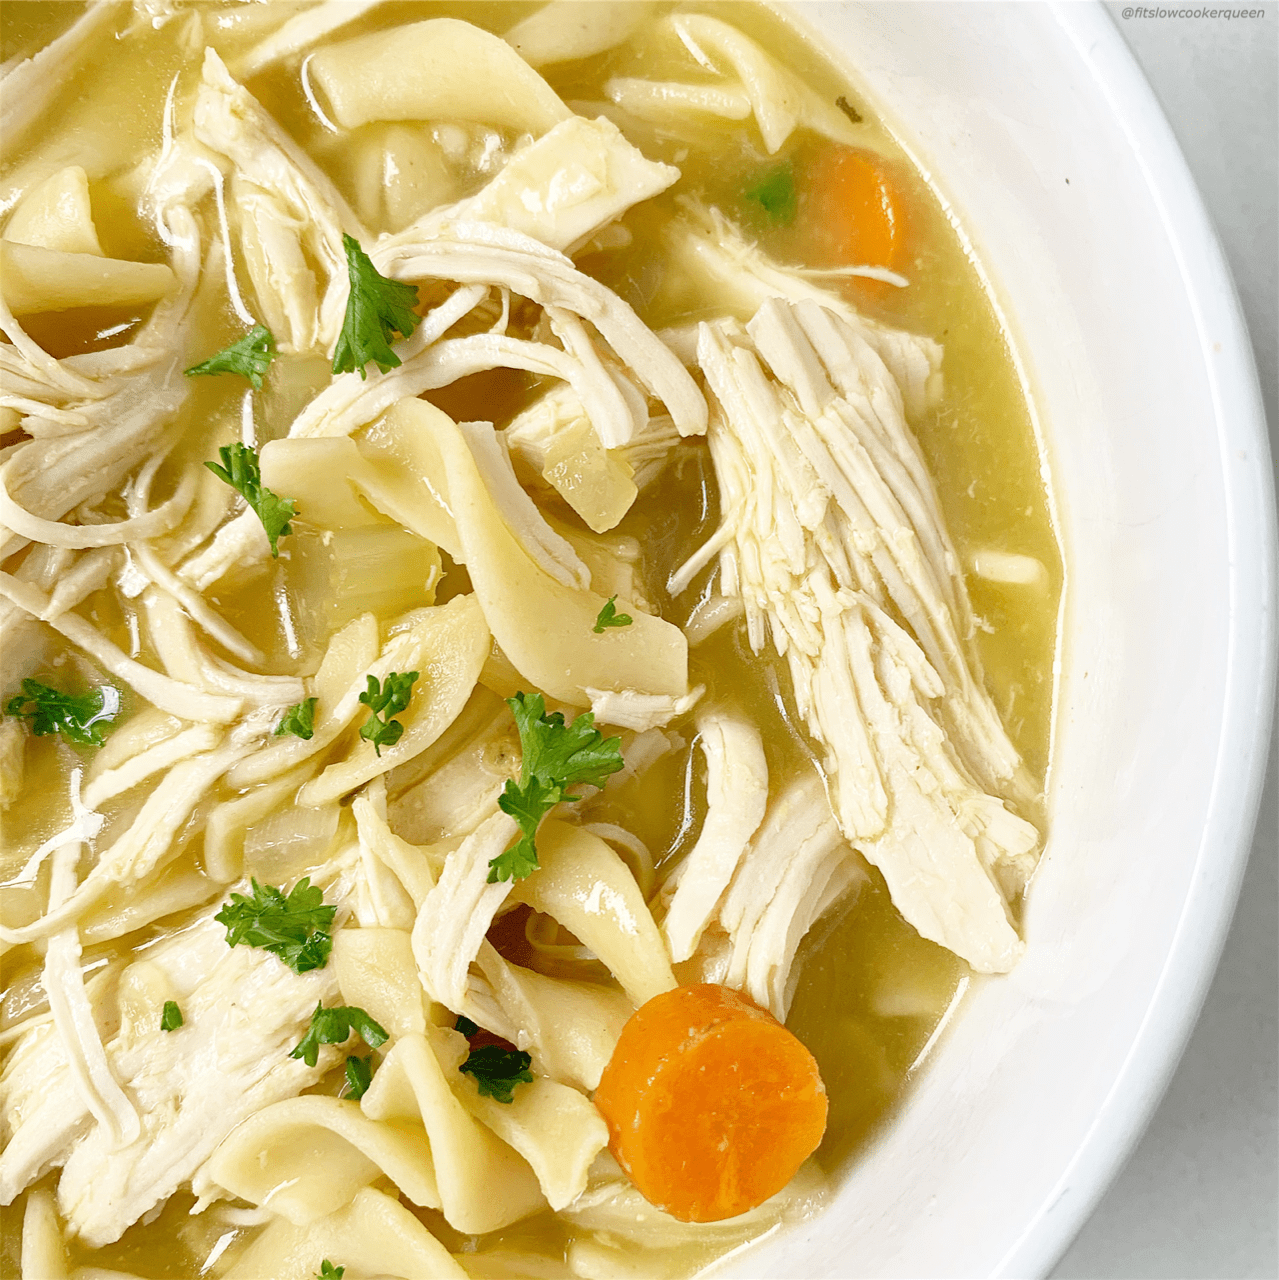 Chicken noodle soup is the ultimate comfort food. This easy soup recipe can be made in your slow cooker or Instant Pot.